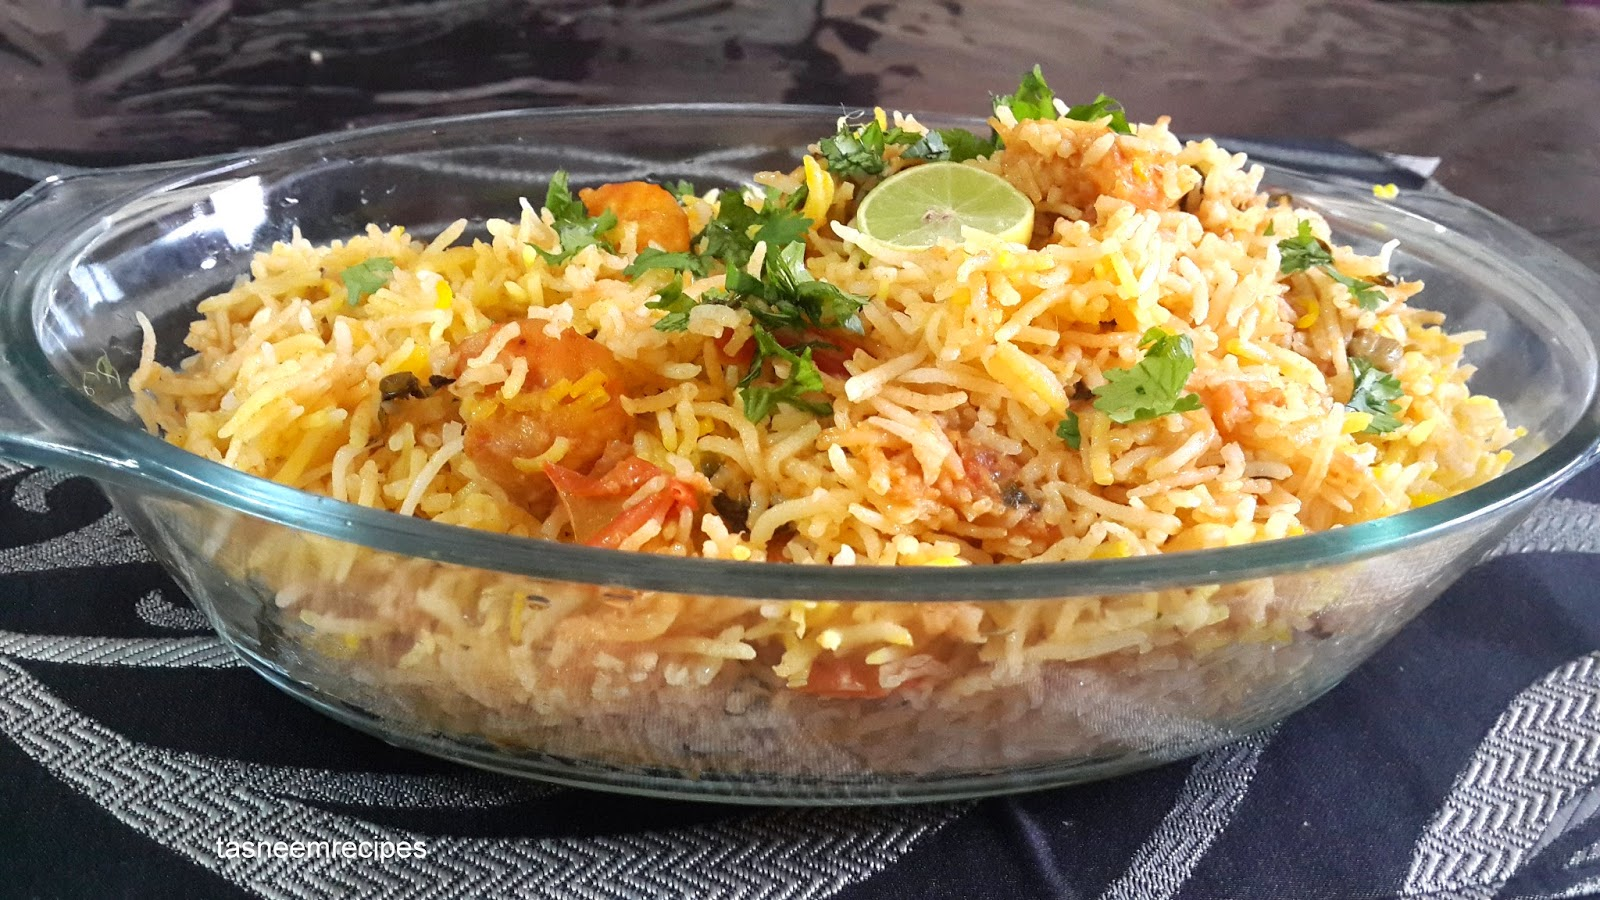 Cooking Made Easy: SPICY SHRIMP BIRYANI